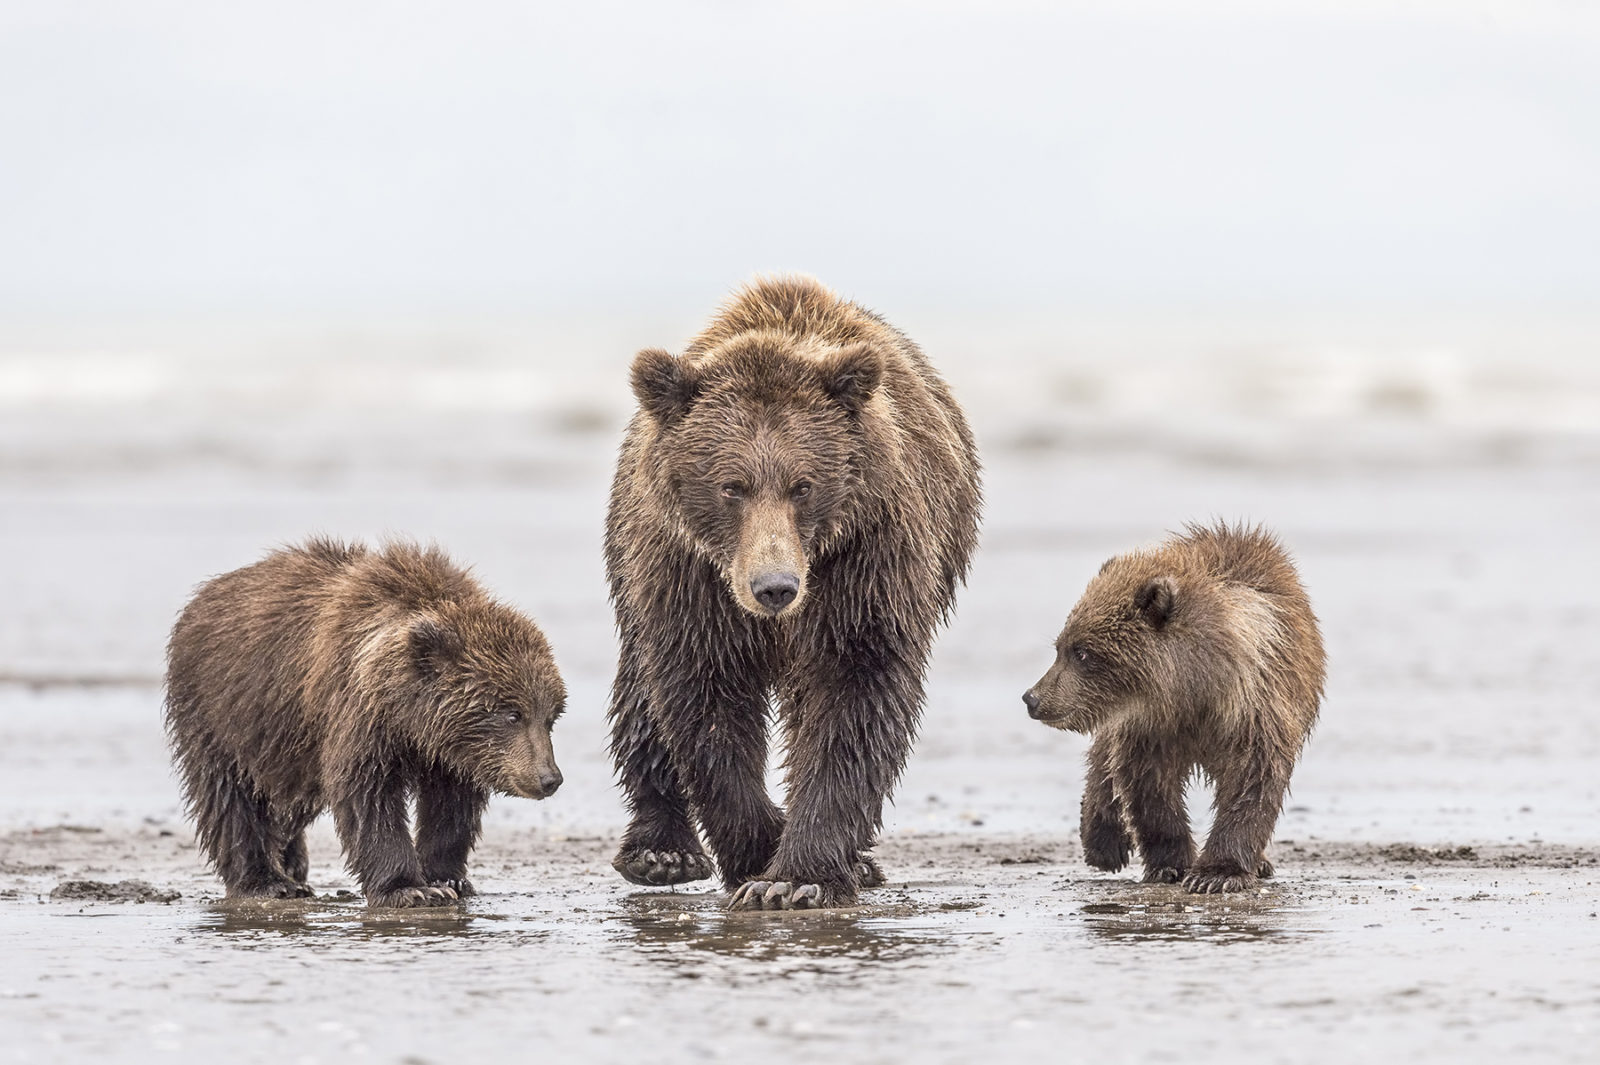 Sow and Cubs on Beach